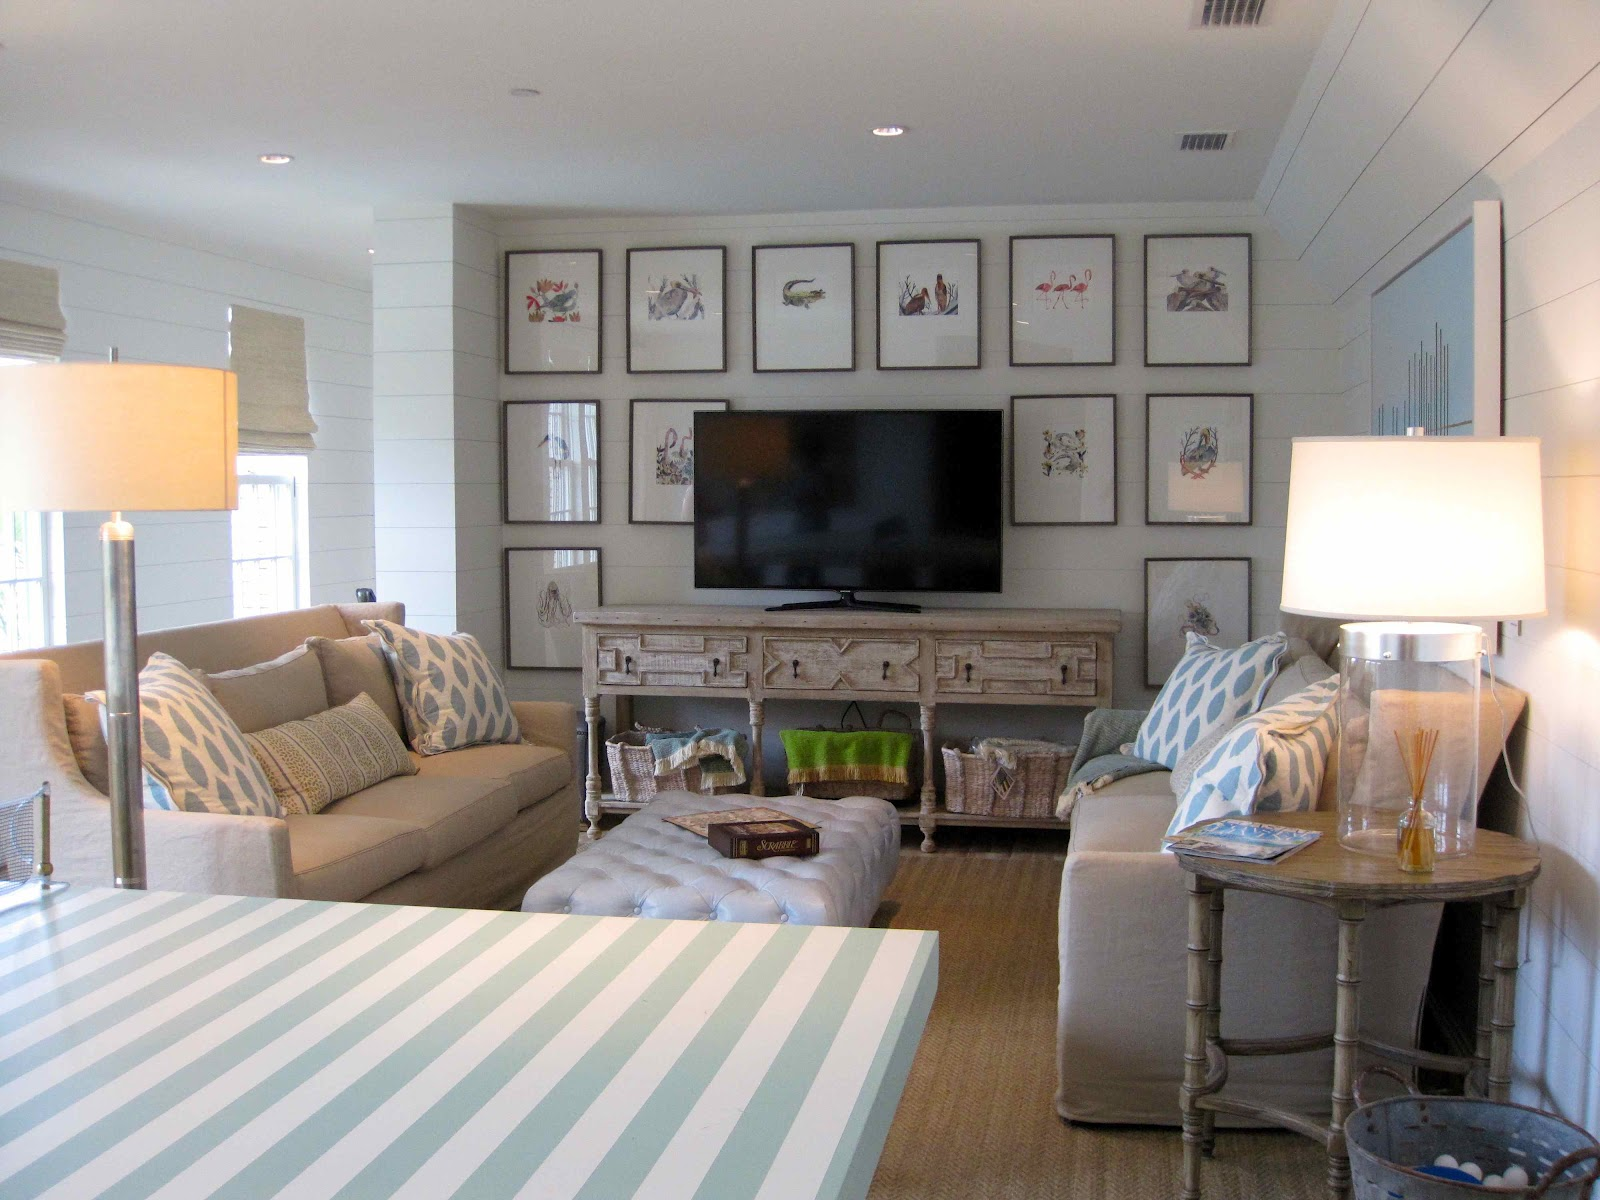 Tour of Coastal Living's Ultimate Beach House: Part 2